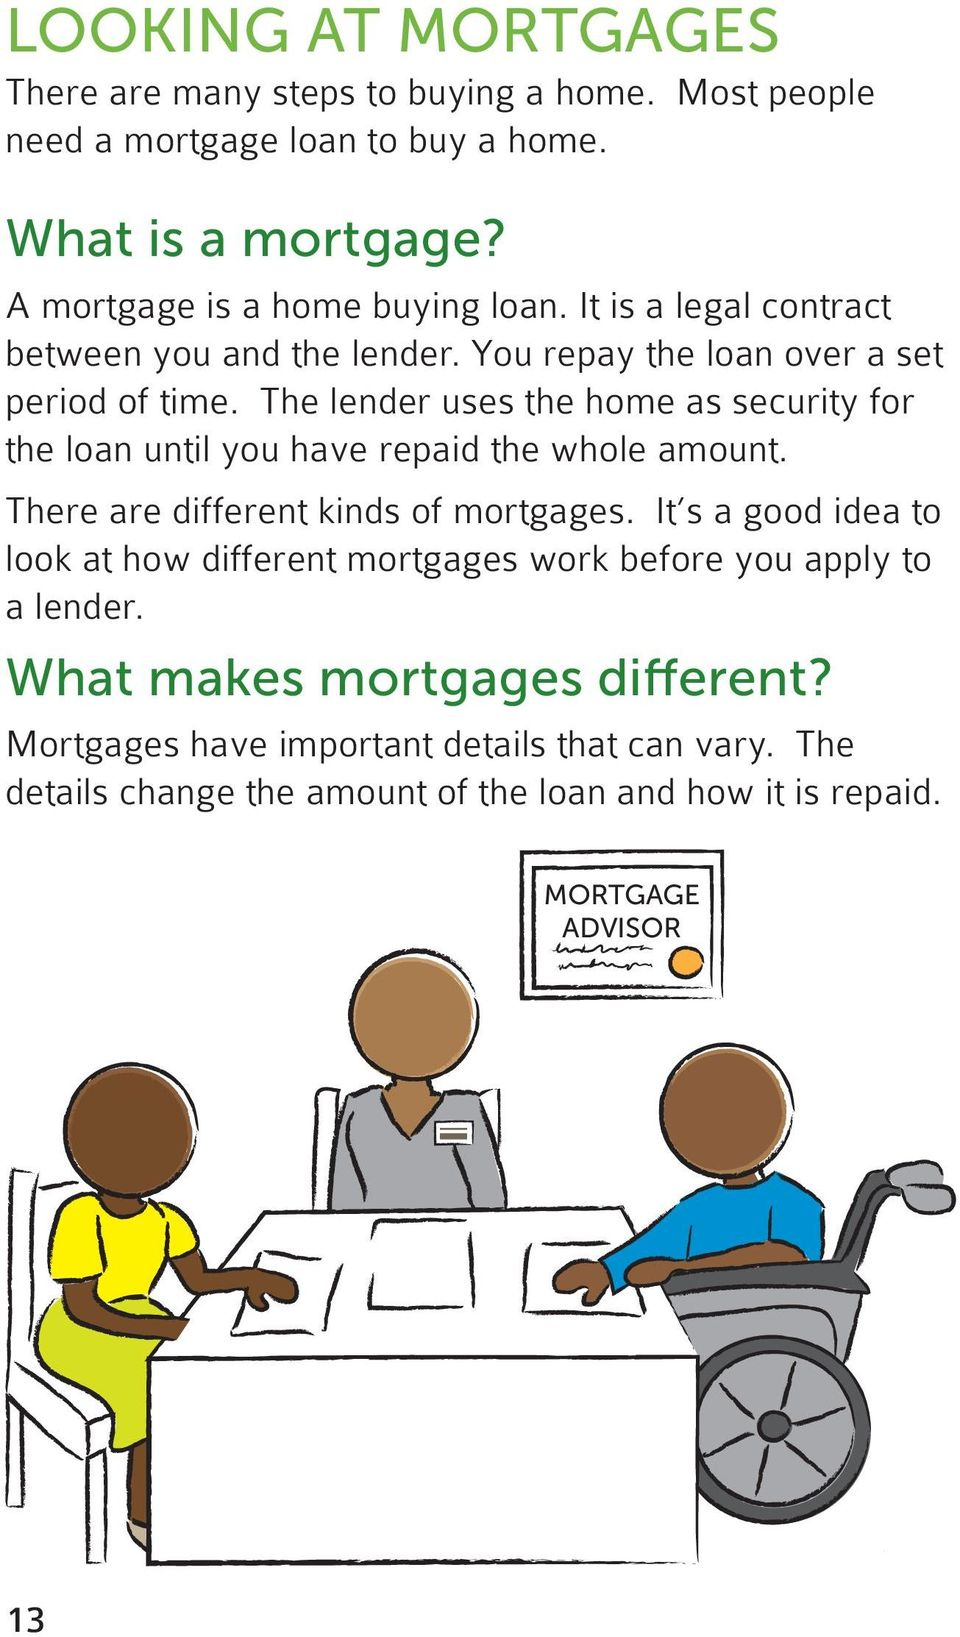 The lender uses the home as security for the loan until you have repaid the whole amount. There are different kinds of mortgages.